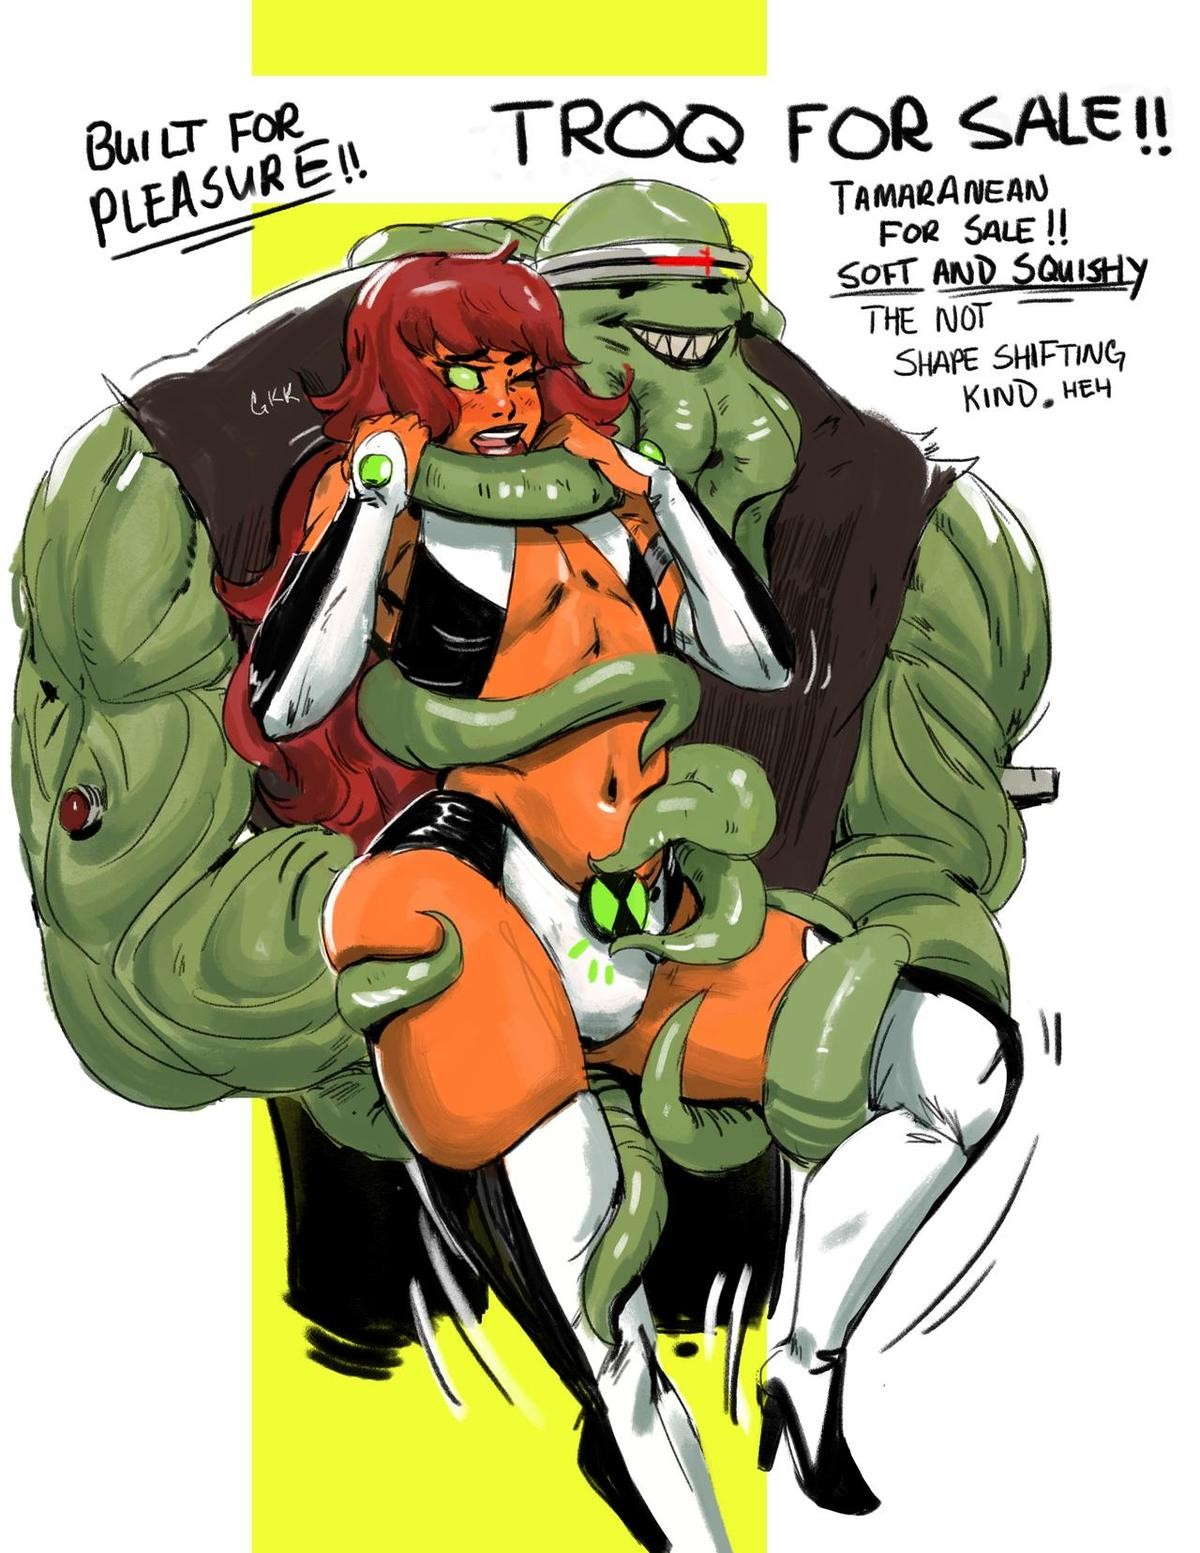 starfire ben. join list: Weirdfetishthings (1187 subs)Mention History.. stop op your trap love is spilling over the sfw space